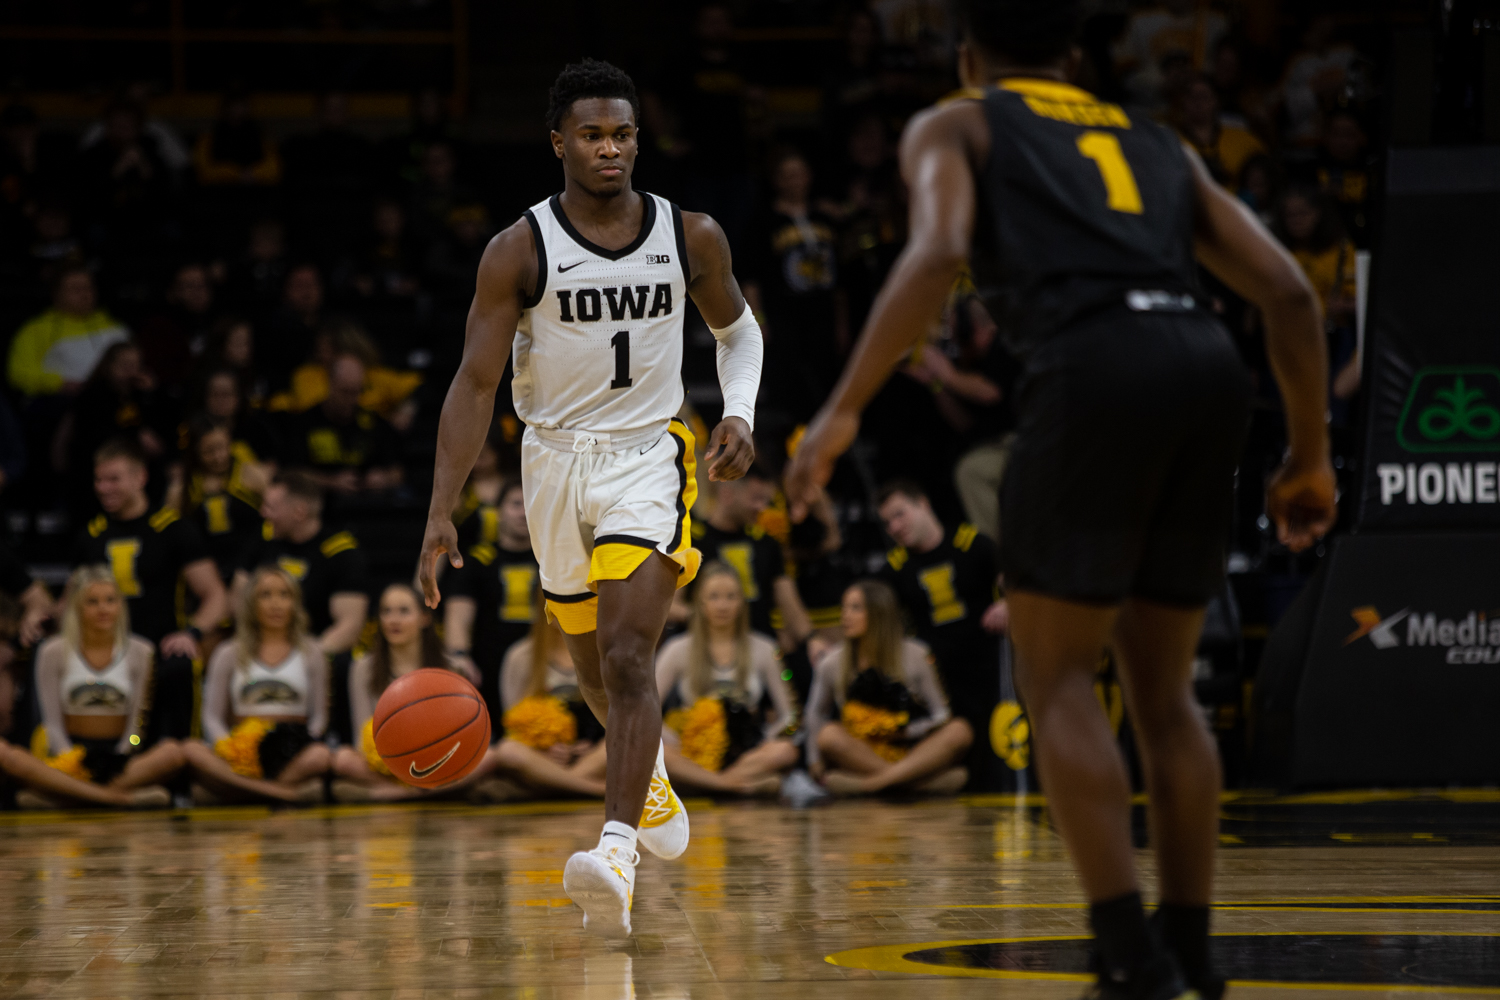 Iowa guard Joe Toussaint keeps the ball away from Kennesaw State's Terrell Burden during a basketball game against Kennesaw State University on Sunday, Dec. 29, 2019 at Carver Hawkeye Arena. The Hawkeyes defeated the Owls, 93-51. (Emily Wangen/The Daily Iowan)